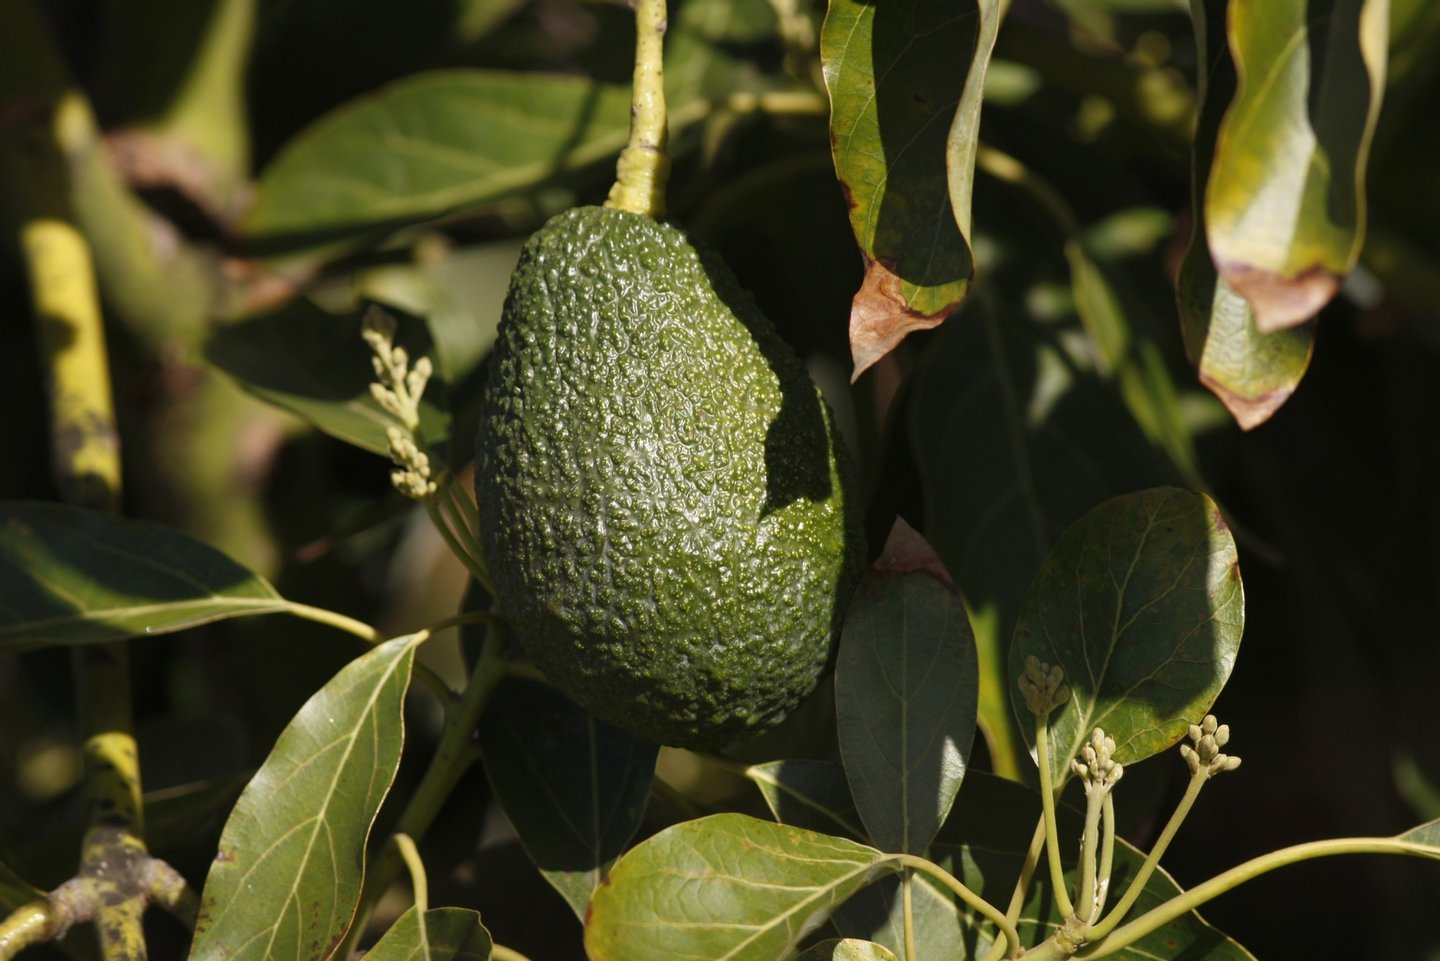 VALLEY CENTER, CA - MARCH 5:  An avocado hangs from a tree at a farm in Pauma Valley on March 5, 2014 near Valley Center, California. The Chipotle restaurant chain 2013 annual report concludes that increasing weather volatility as well as weather pattern changes and global climate change could have a significant impact on the price or availability of some of their ingredients. As the costs of basics like avocados rise, Chipotle may reluctantly choose to temporarily drop some items from their menu such as guacamole and one or more salsas. Chipotle reportedly uses 97,000 pounds of avocados per day, about 35.4 million pounds per year.   (Photo by David McNew/Getty Images)